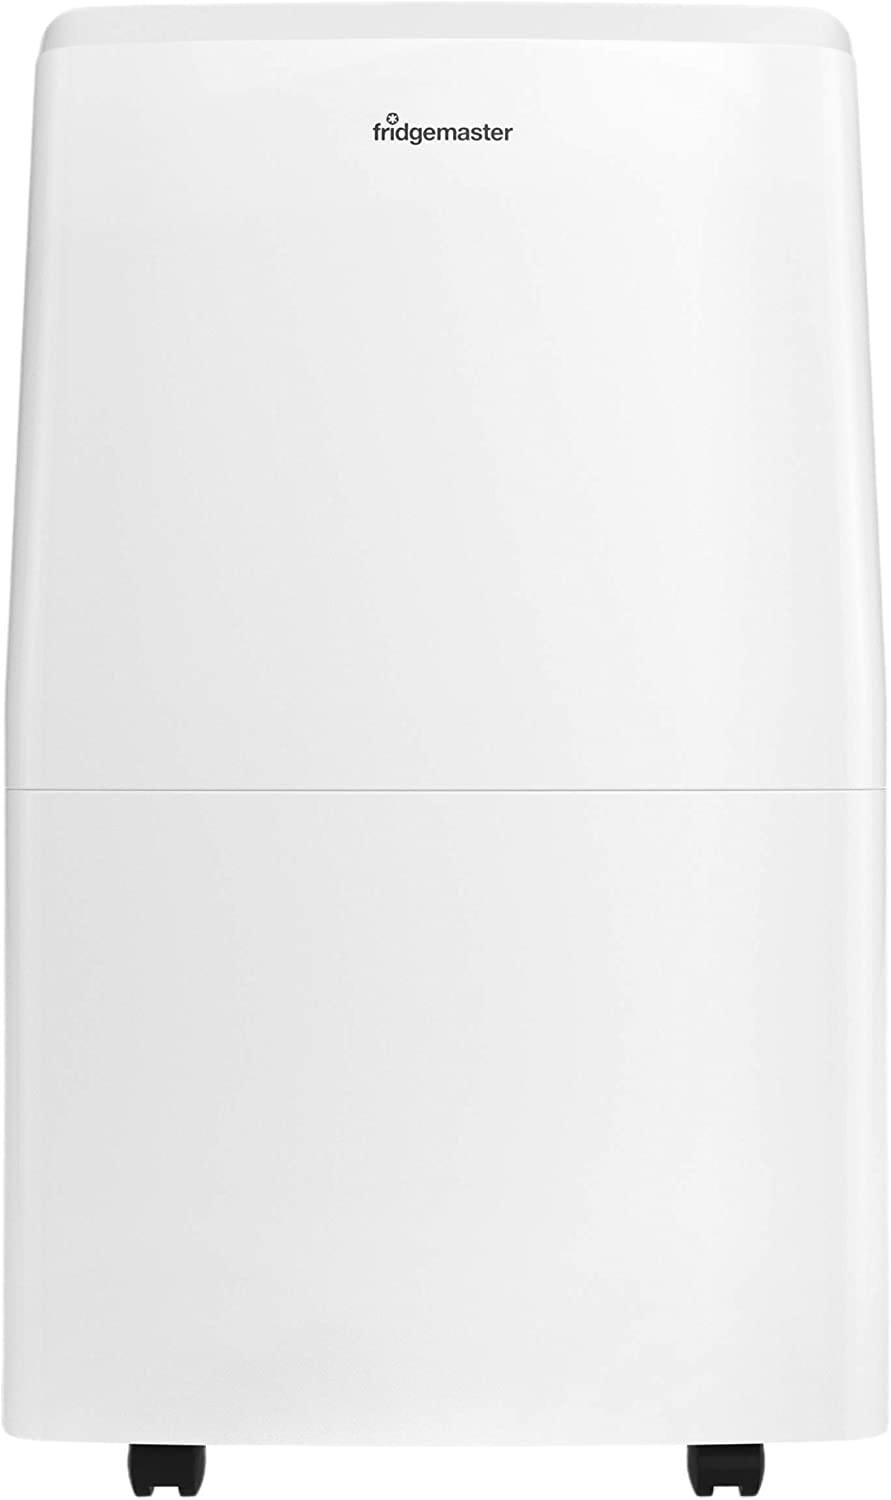 Fridgemaster 4500 Sq Ft Dehumidifier with Pump, Energy Star Quiet Dehumidifiers for Home, Basements, Bathroom, Bedroom, Large Room, Office, RV, Auto Shut Off, 50 Pint